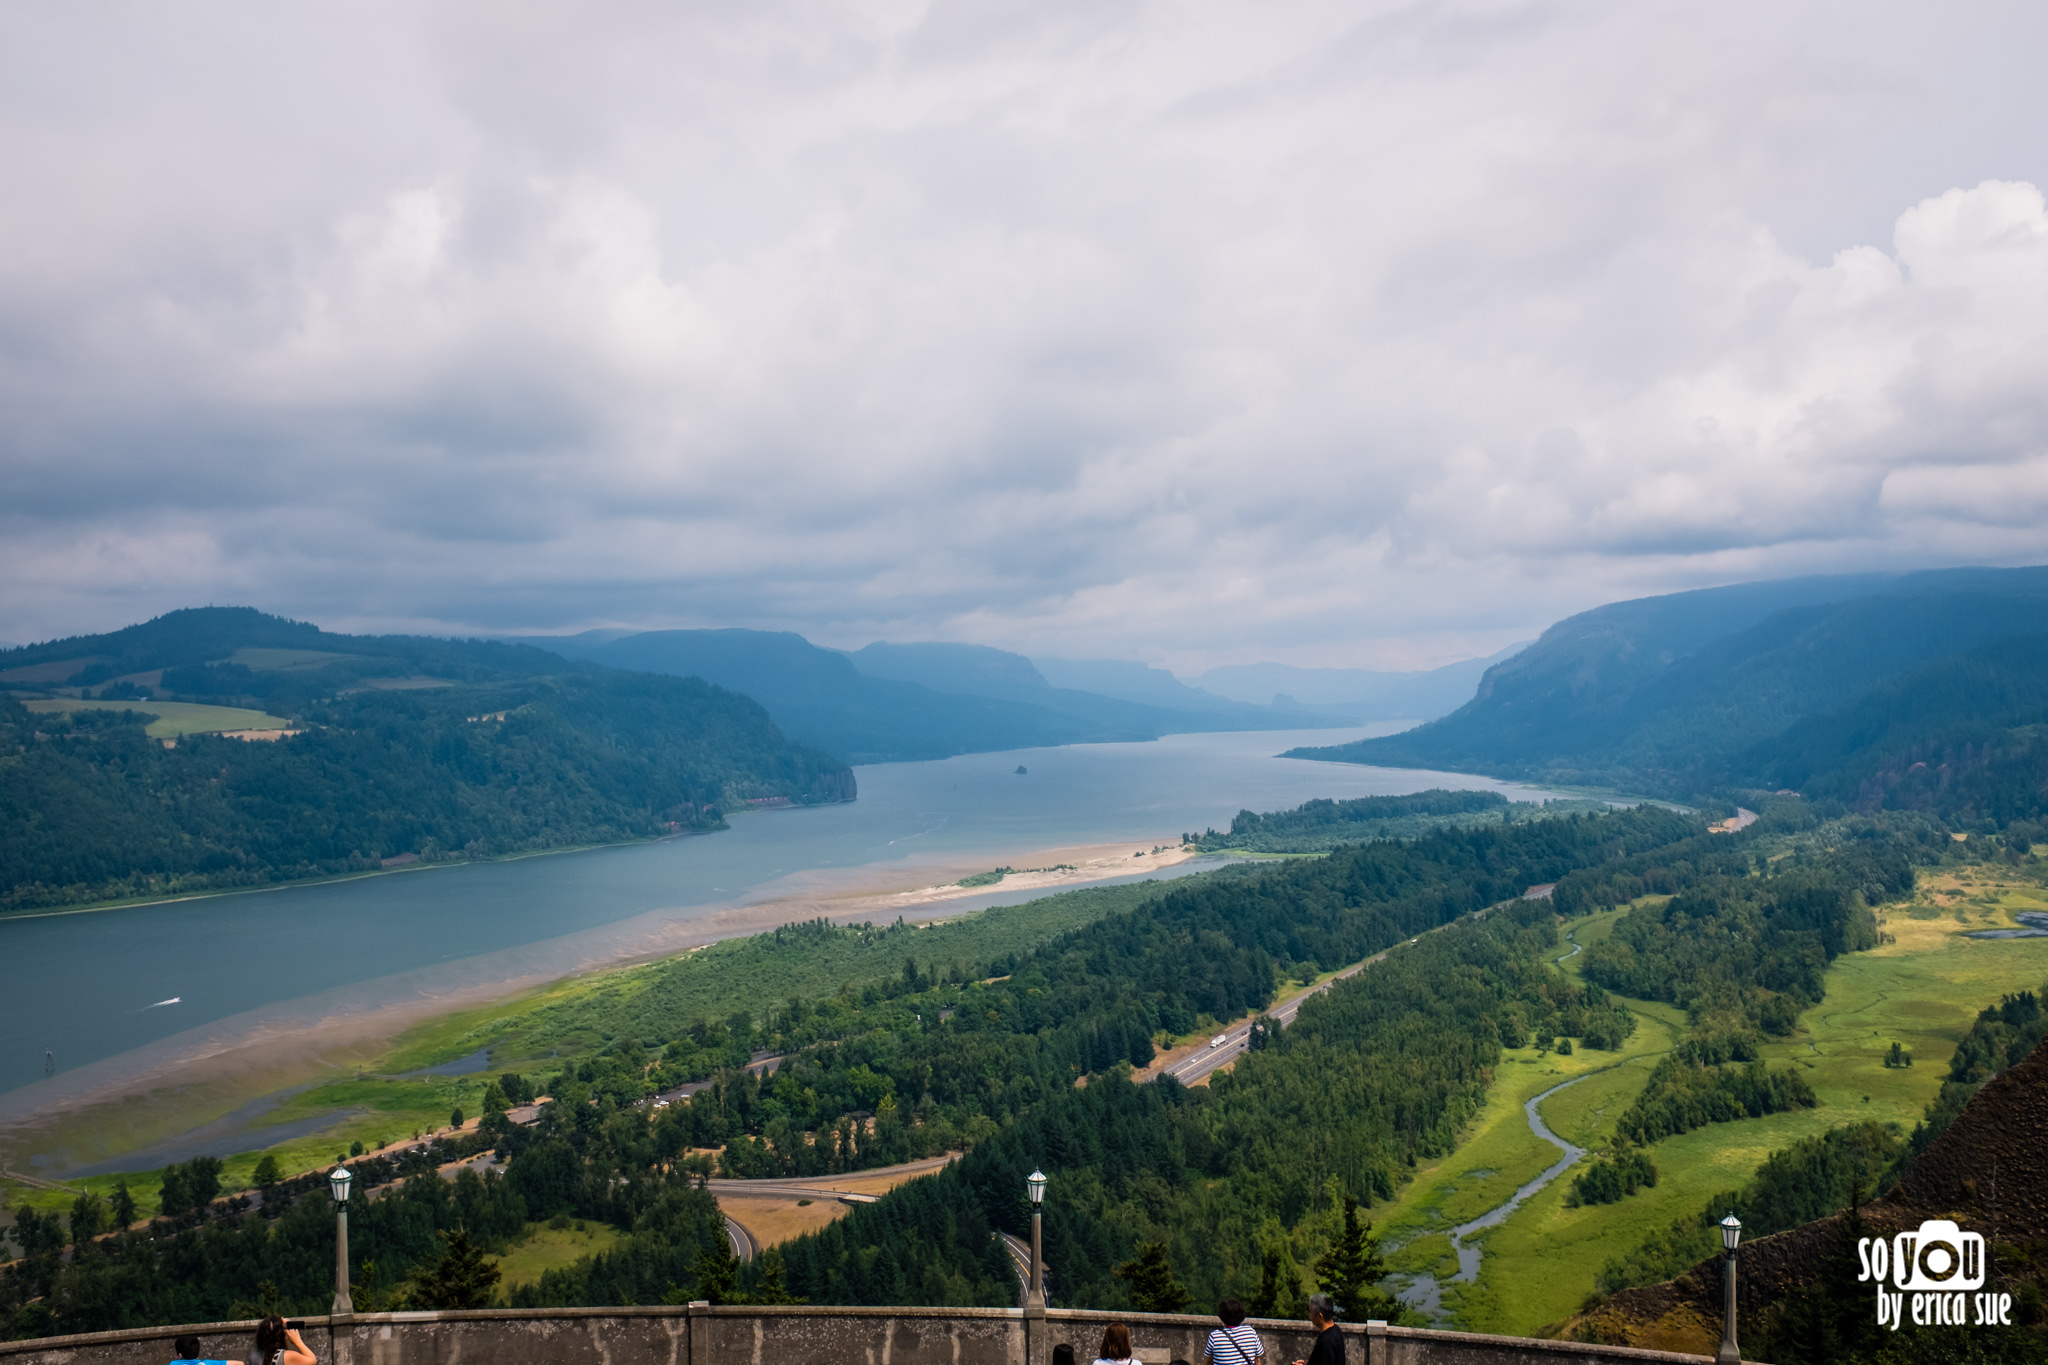 so-you-by-erica-sue-portland-things-to-do-multnomah-falls-bonneville-dam-3712.JPG